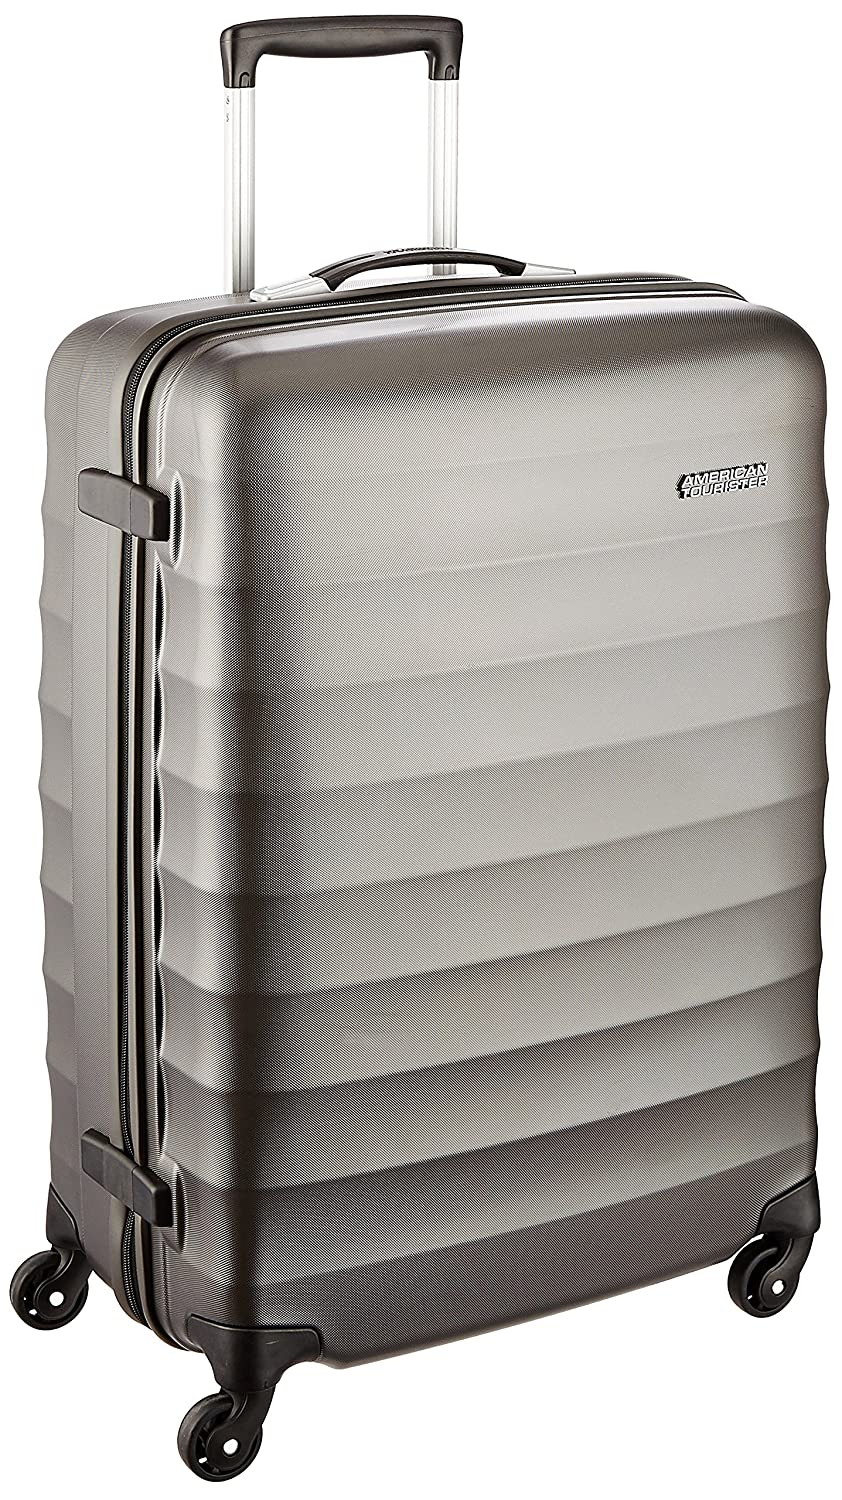 American Tourister Polyester 69 cms Gunmetal Hardsided Suitcase (71W (0) 58 002)